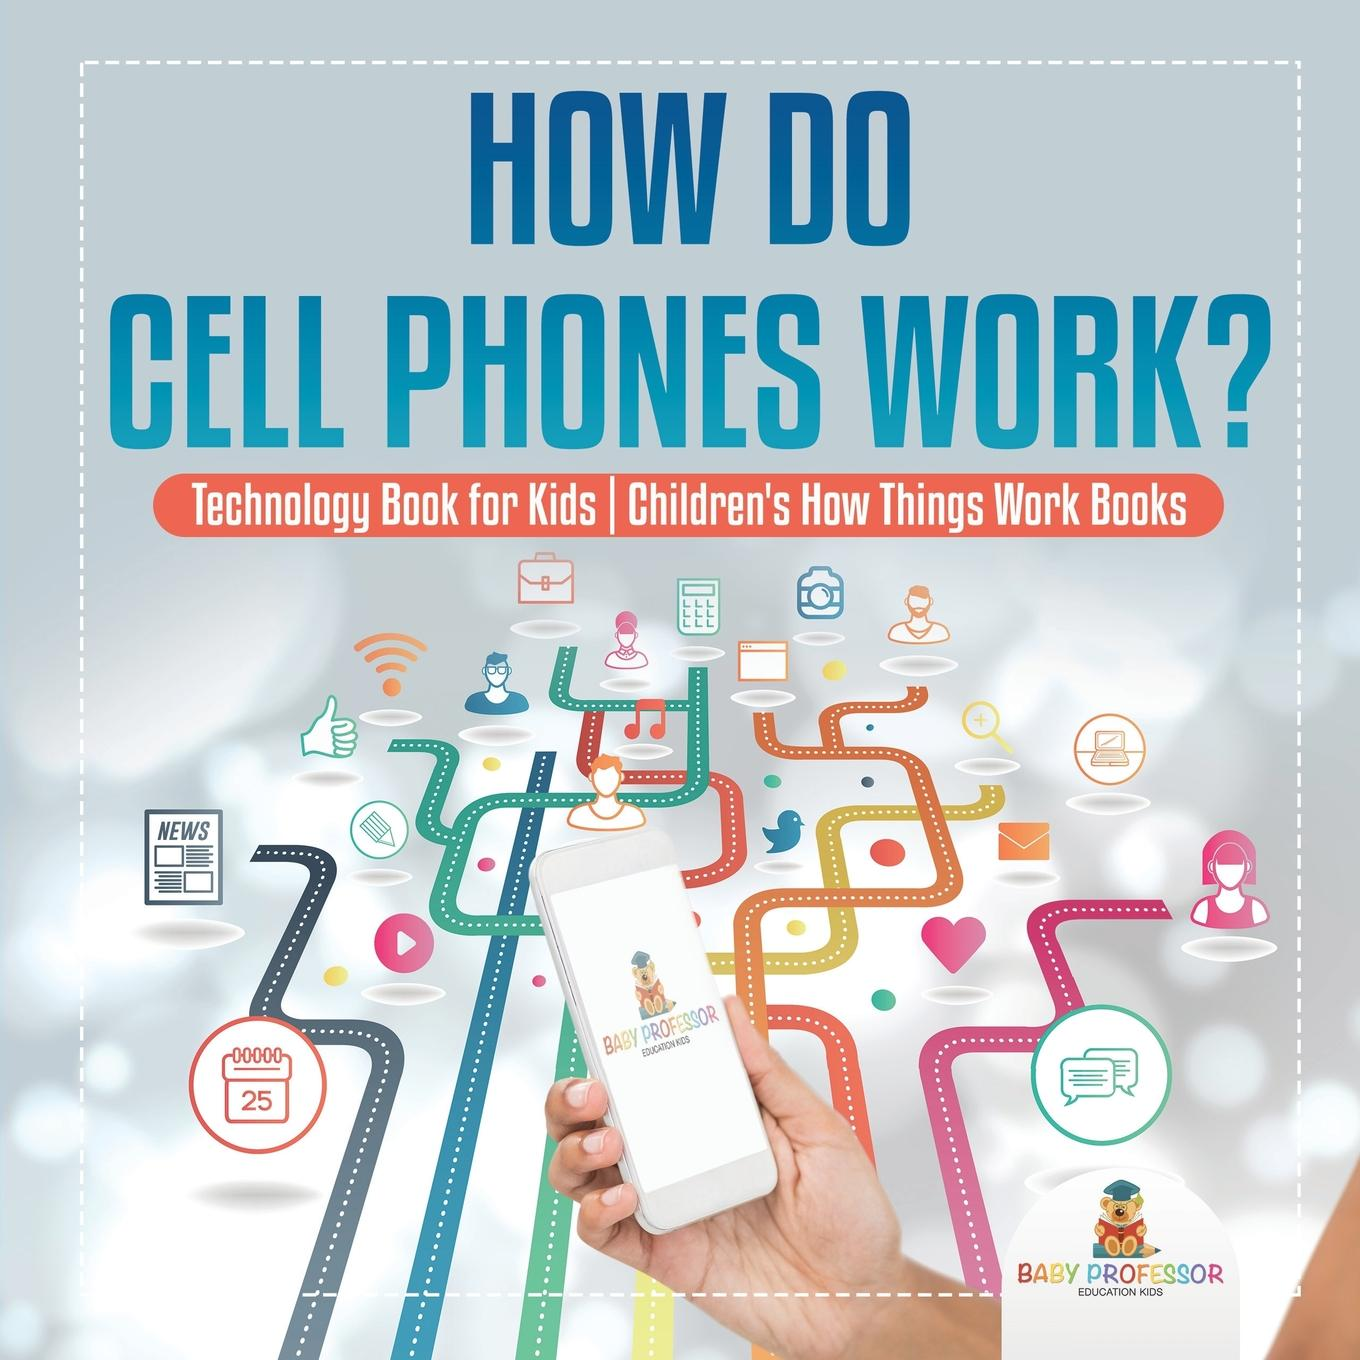 How Do Cell Phones Work? Technology Book for Kids Children's How Things Work Books